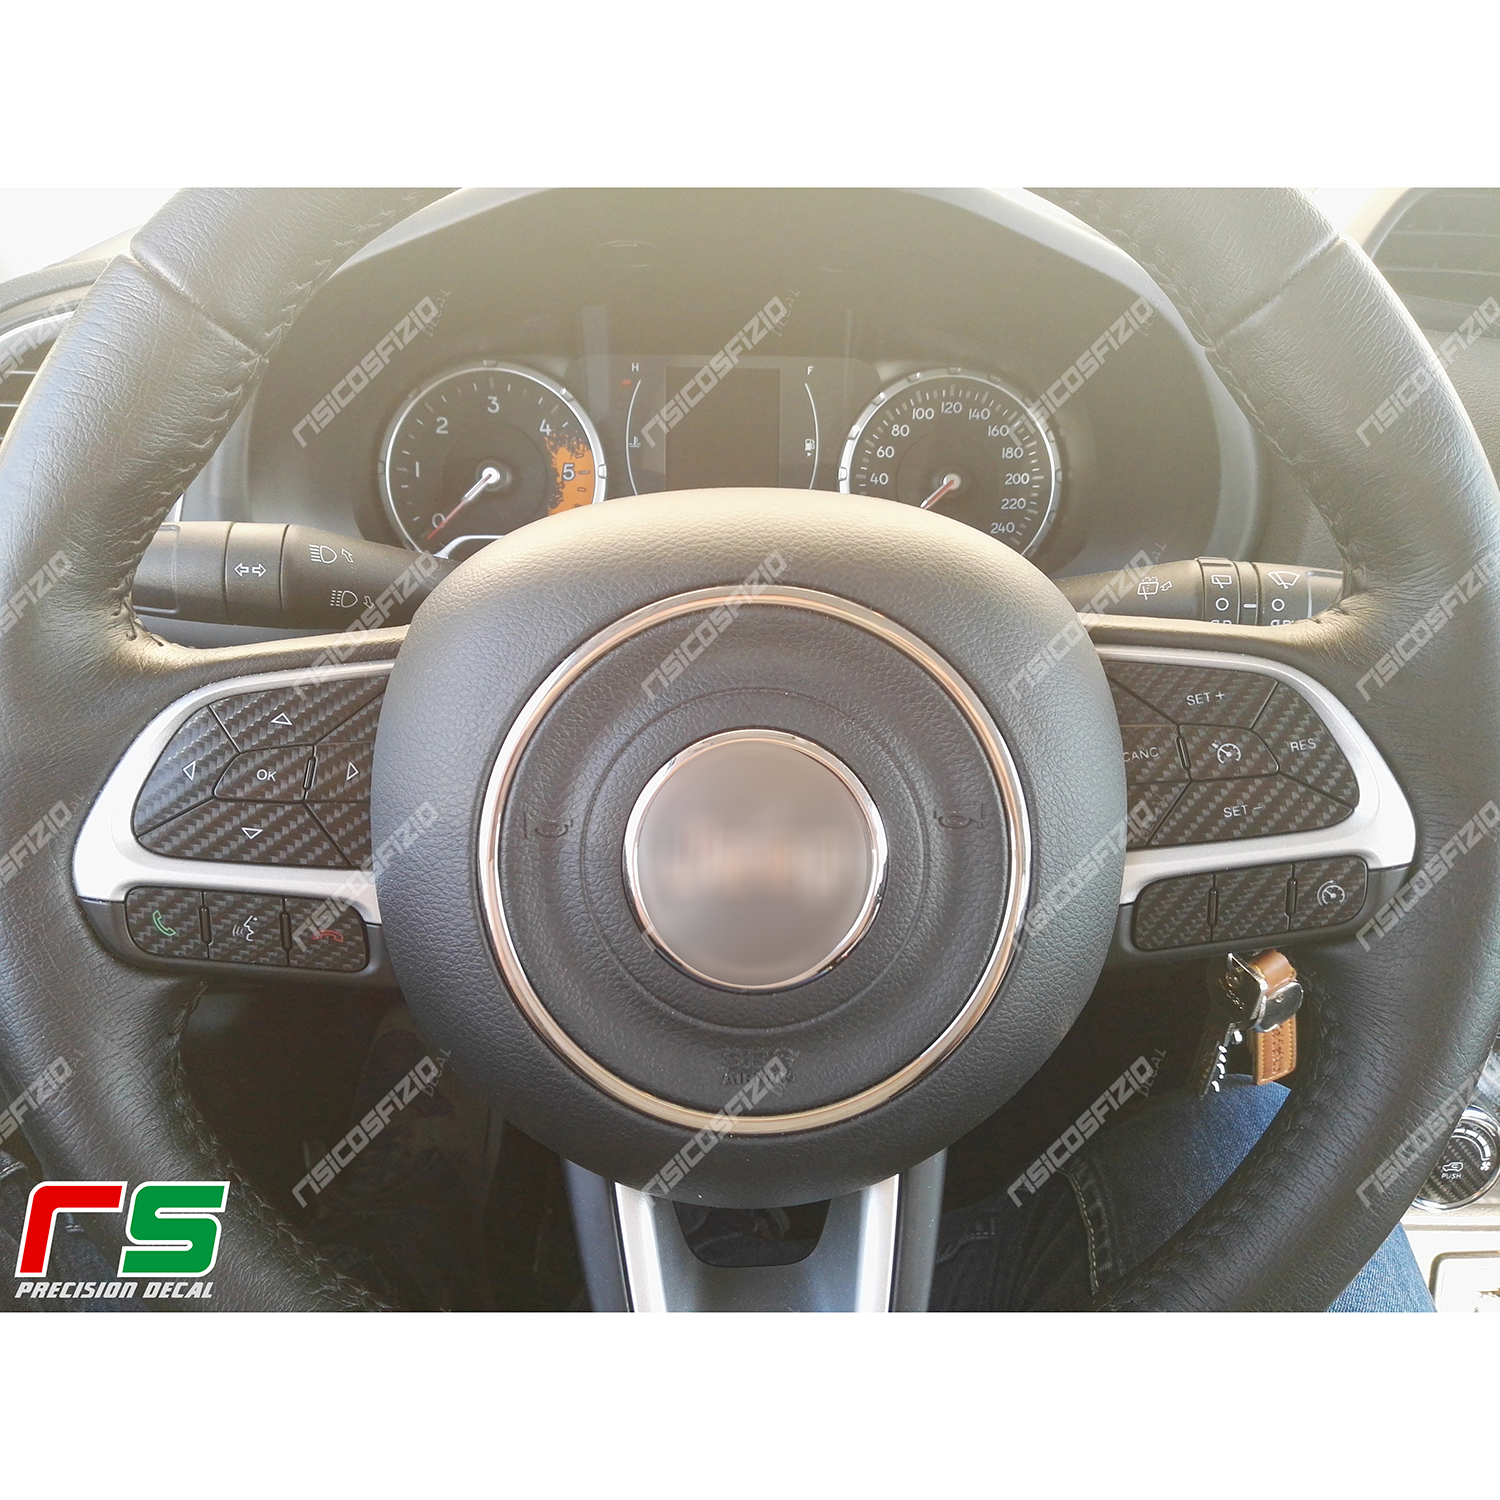 187 DTS LINE PASSARUOTA tipo a 6mm 4x98 FIAT SEICENTO TIPO